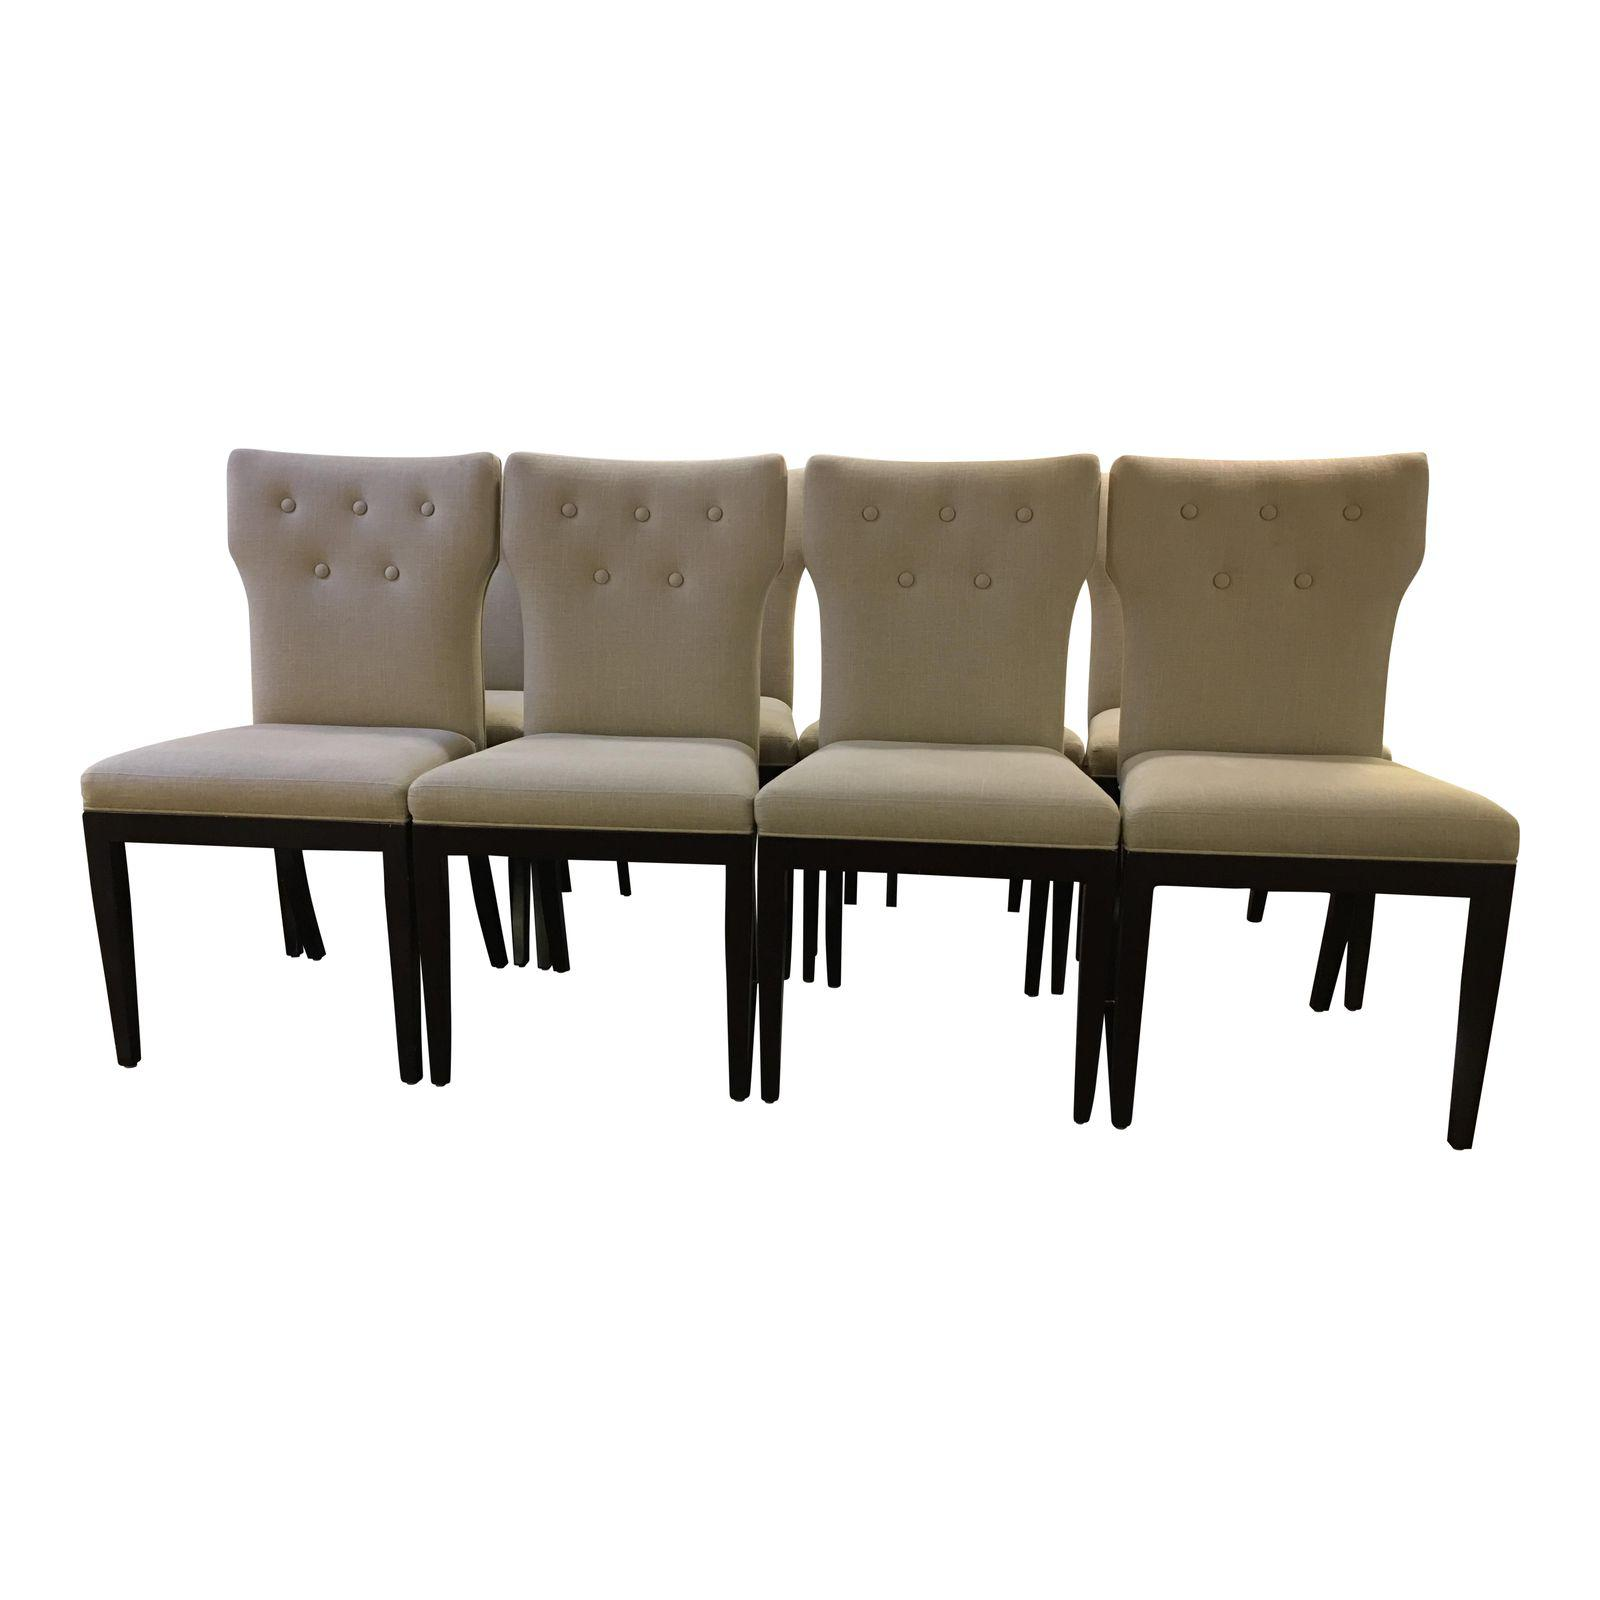 Set Of Eight Tufted Linen Dining Chairs Original Price